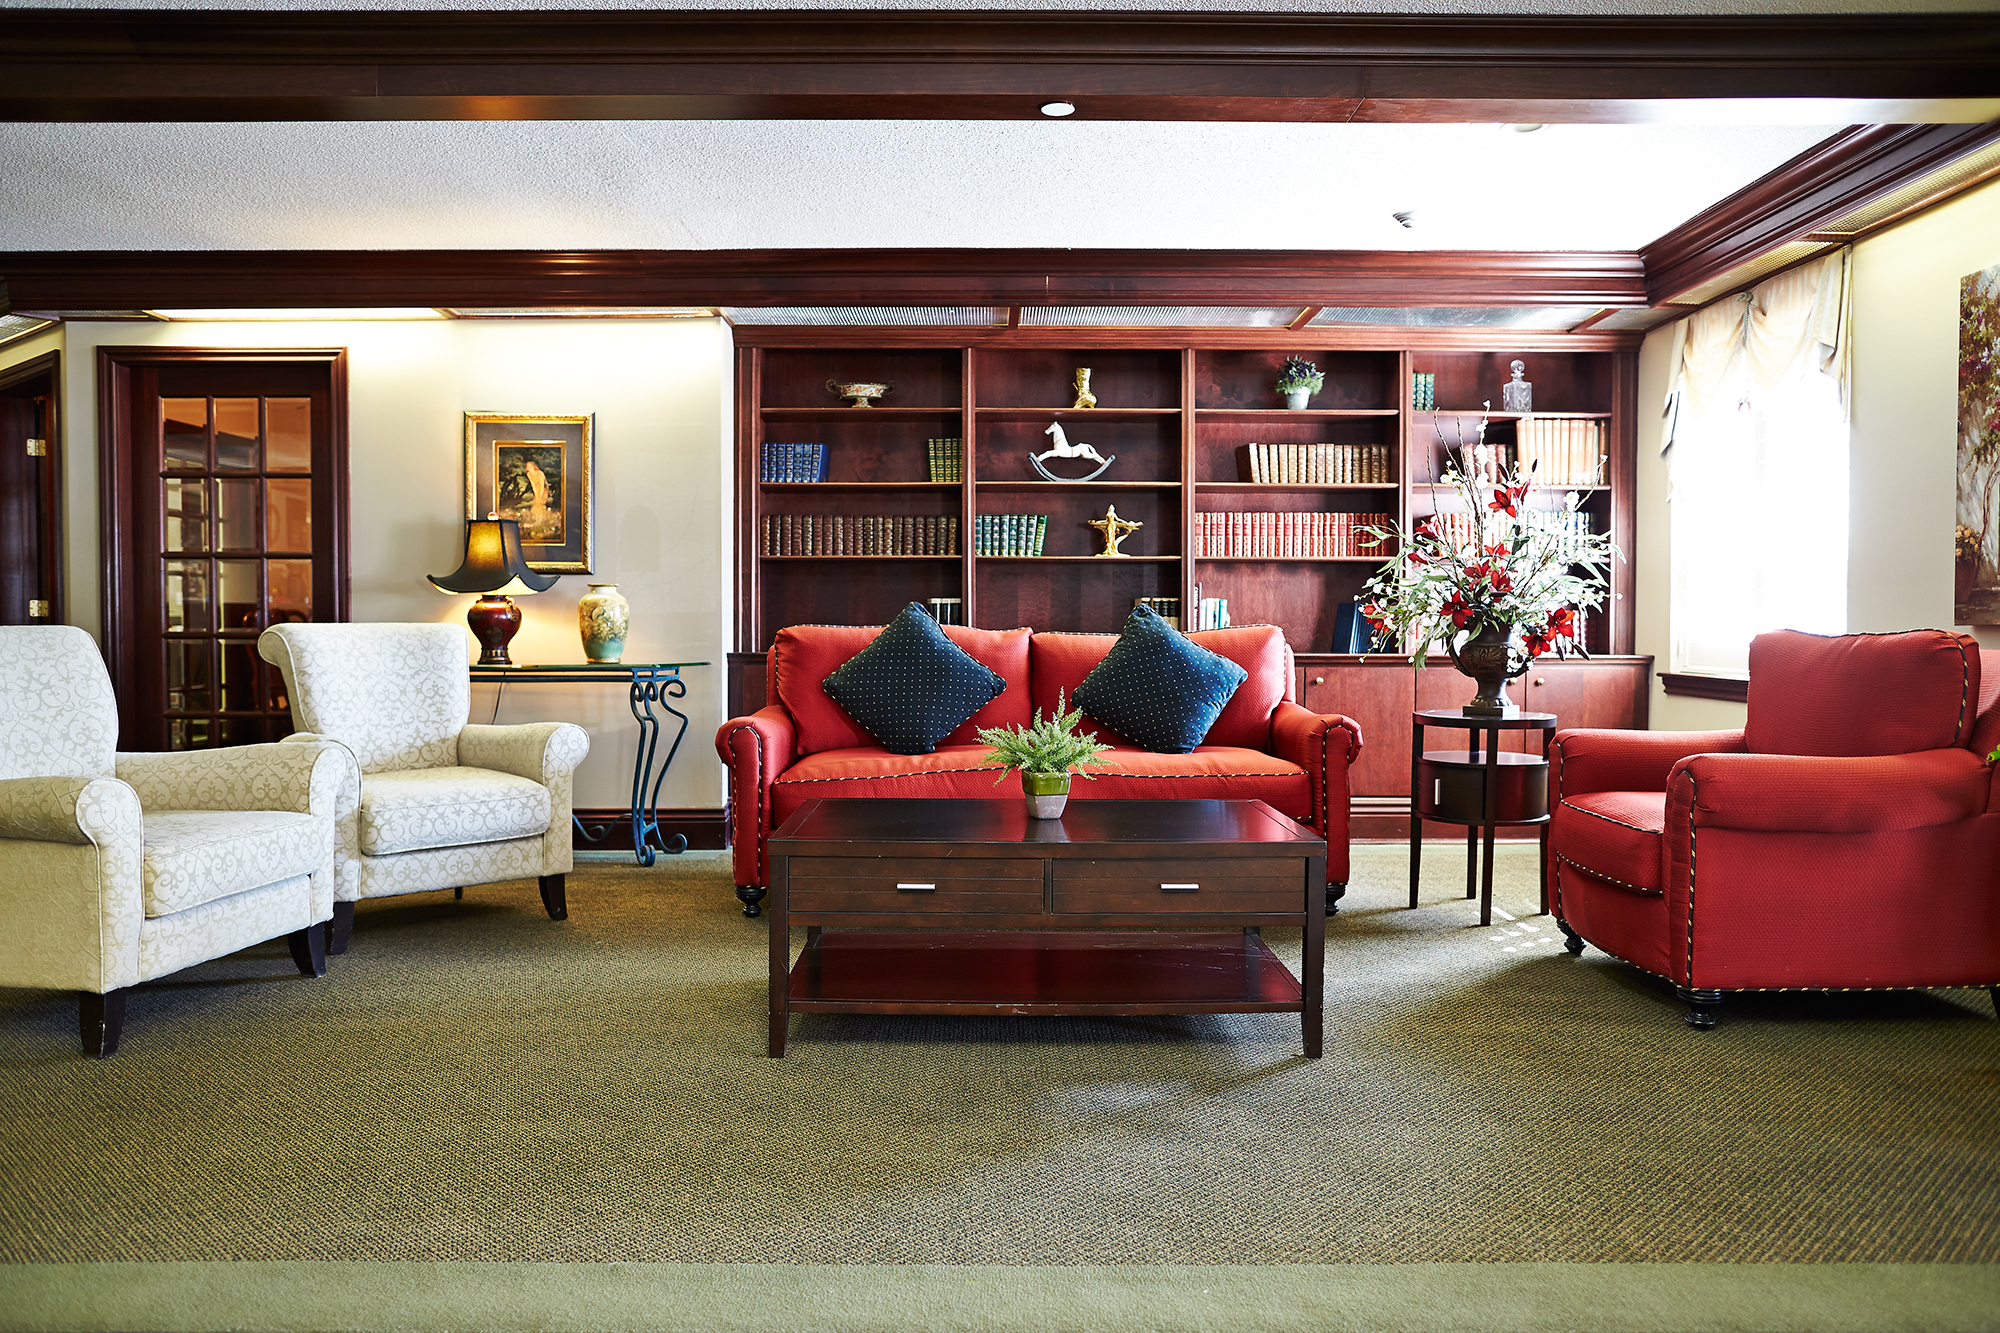 The library of Heatherwood Retirement Residence in St. Catharines